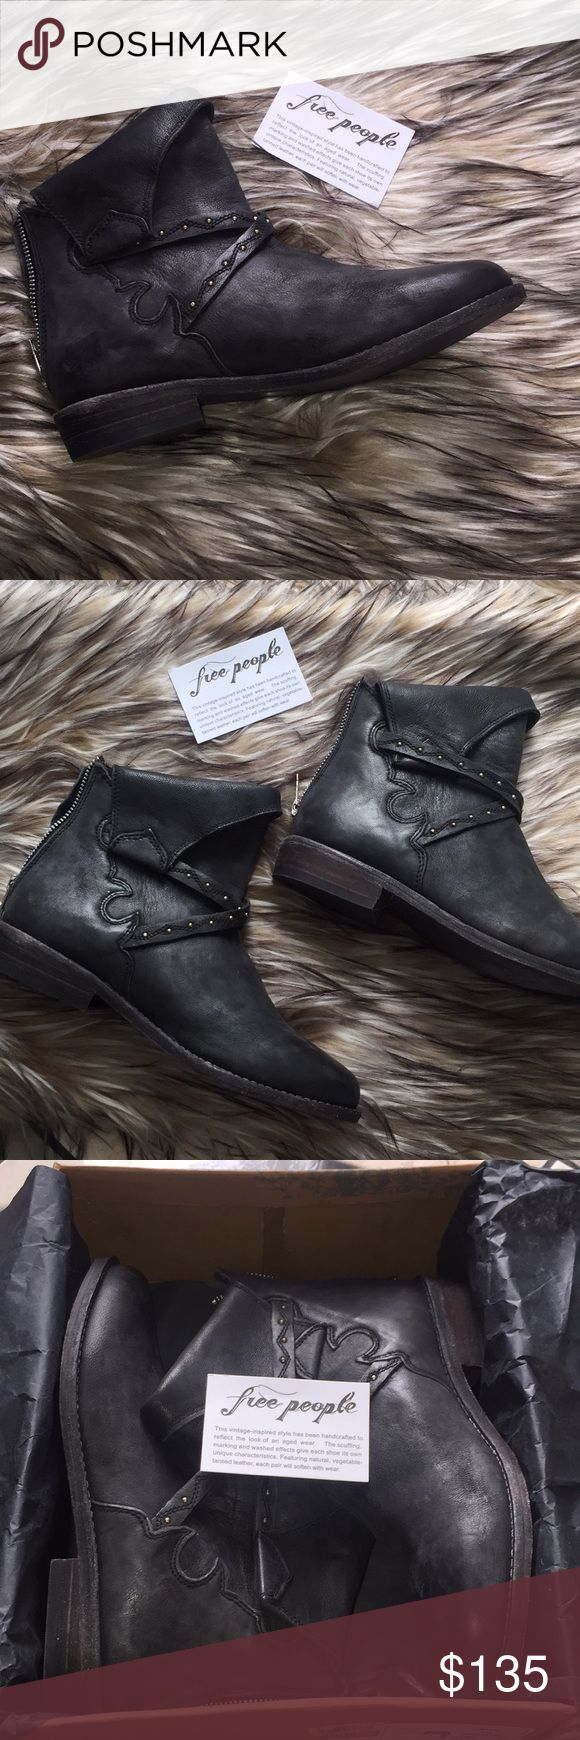 """NIB Free People """"alamosa"""" boots Size 38 or US size 8  Free People """"alamosa"""" New boots designed to look worn and vintage Silver hard ware Free People Shoes Ankle Boots & Booties"""